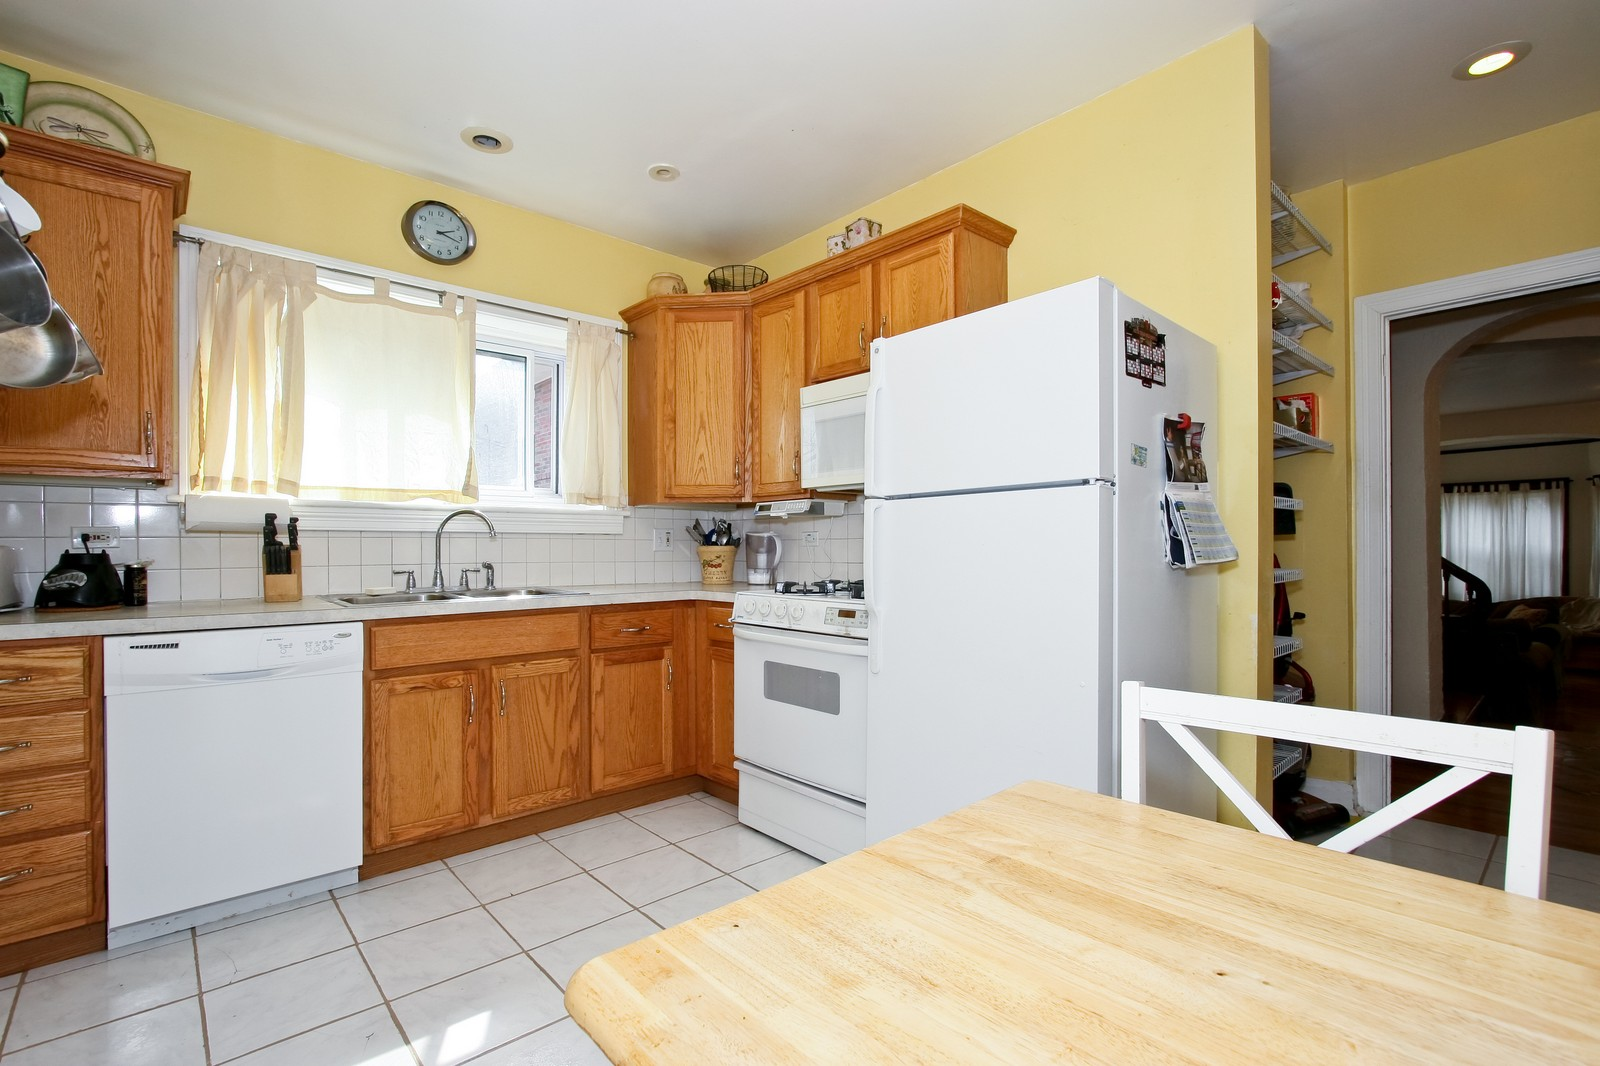 Real Estate Photography - 9001 S. Bell Ave., Chicago, IL, 60643 - Kitchen